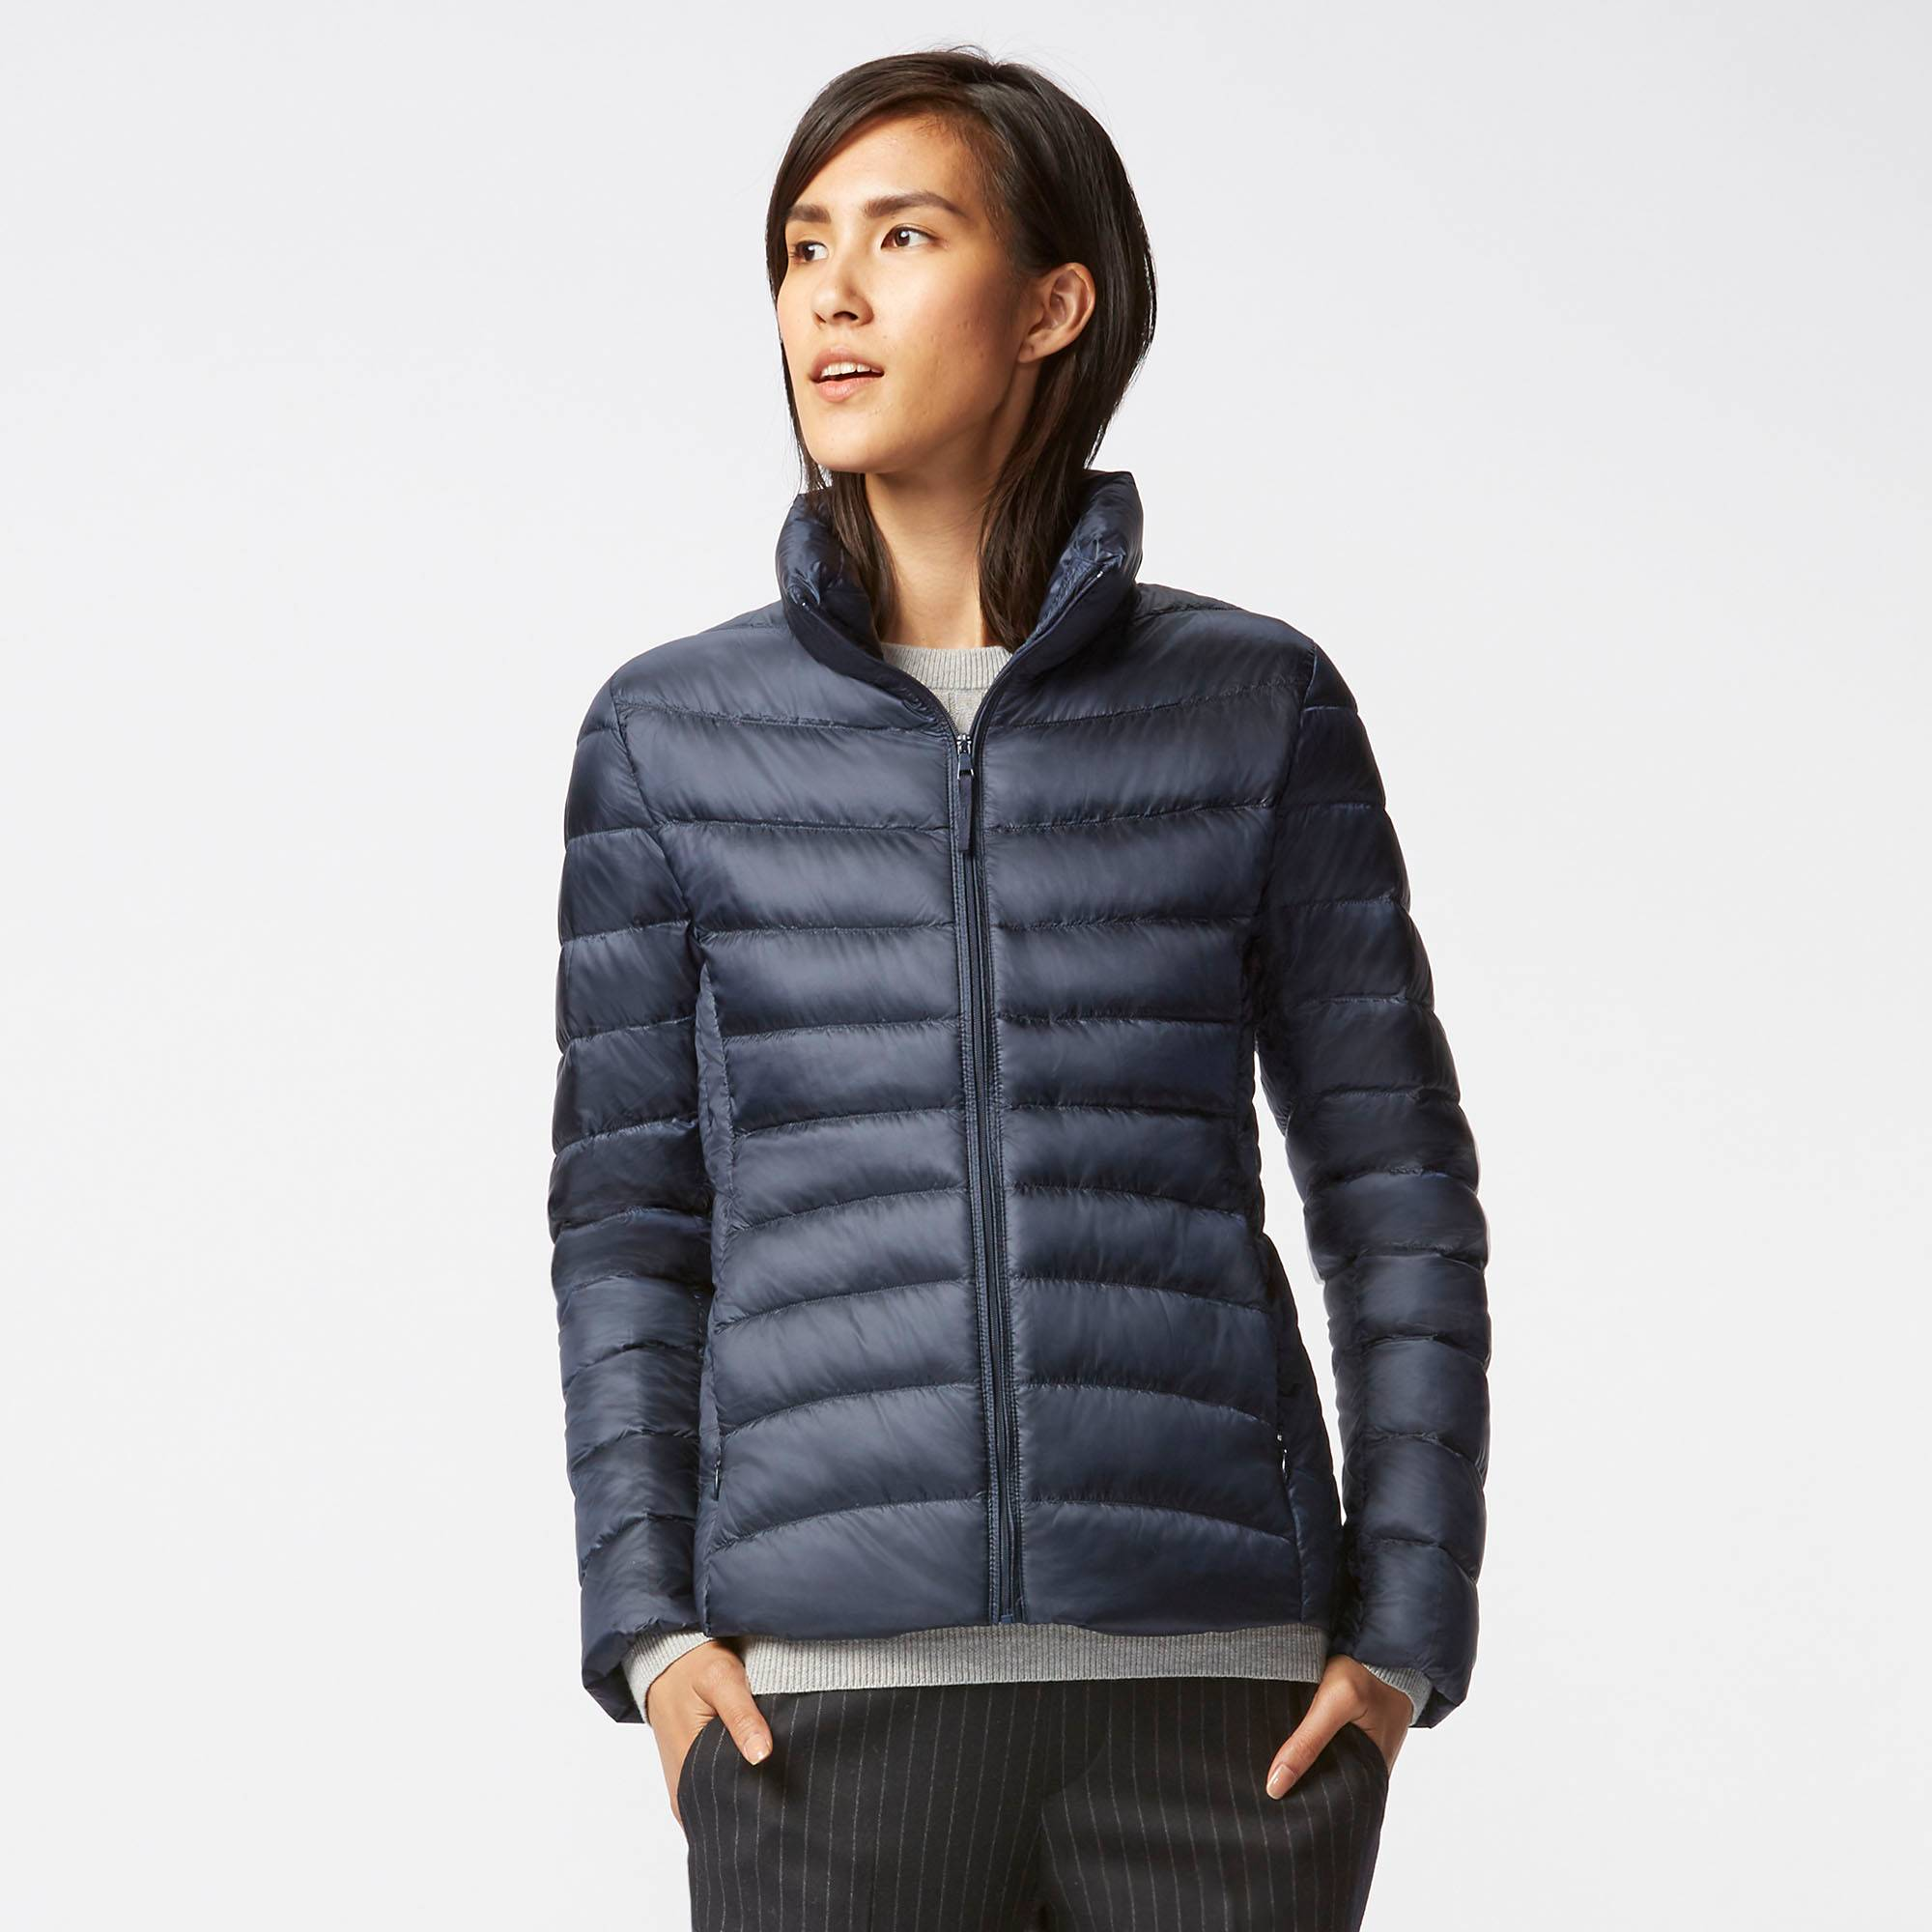 Super Light Down Jacket Jacket To